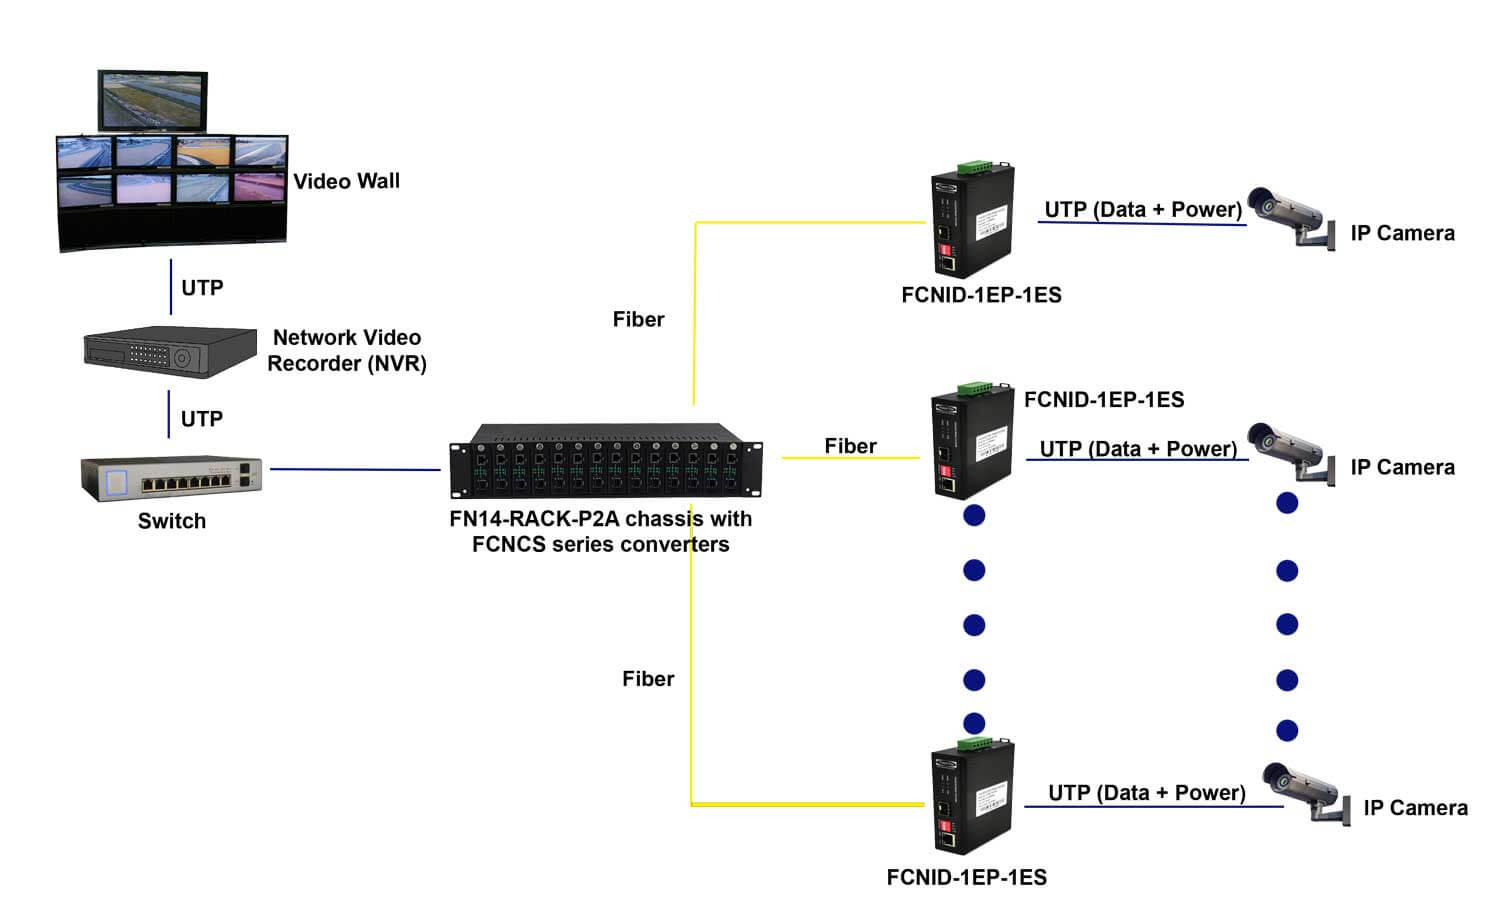 Application diagram of FCNID-1EP-1ES PoE/PoE+ Industrial Fast Ethernet media converter